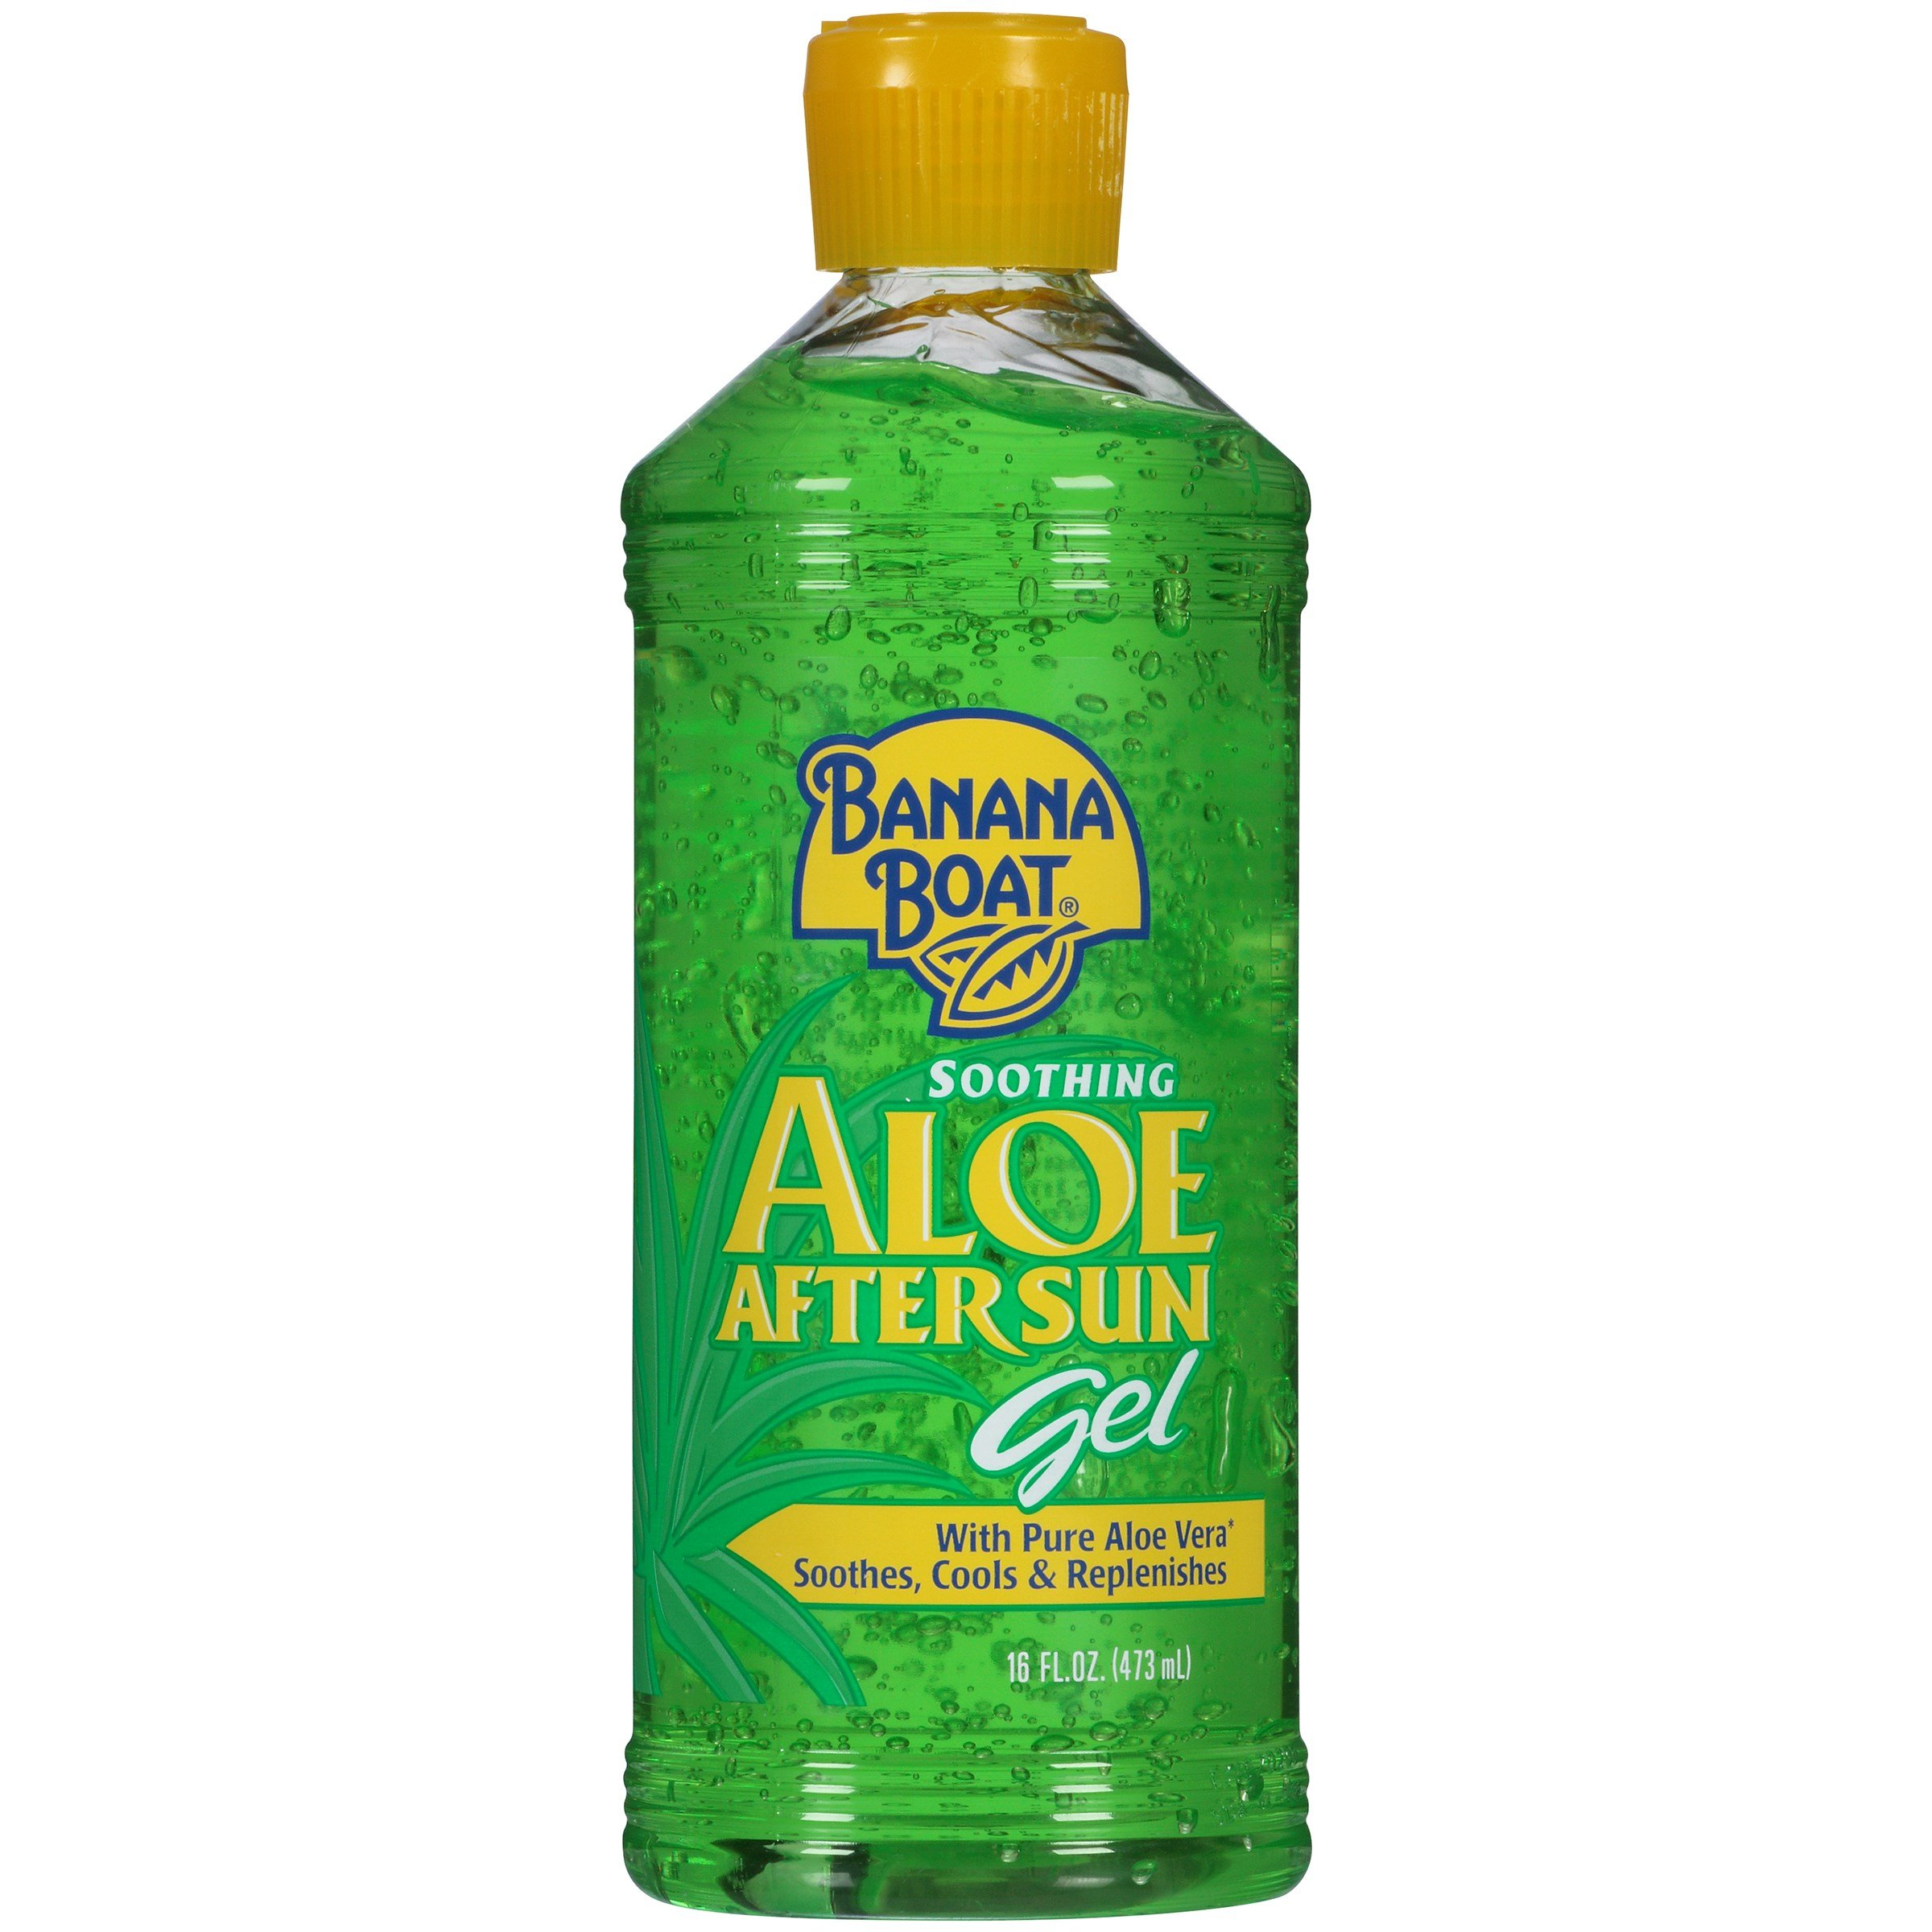 Banana Boat Soothing Aloe After Sun Gel, 16 oz (Pack of 6)